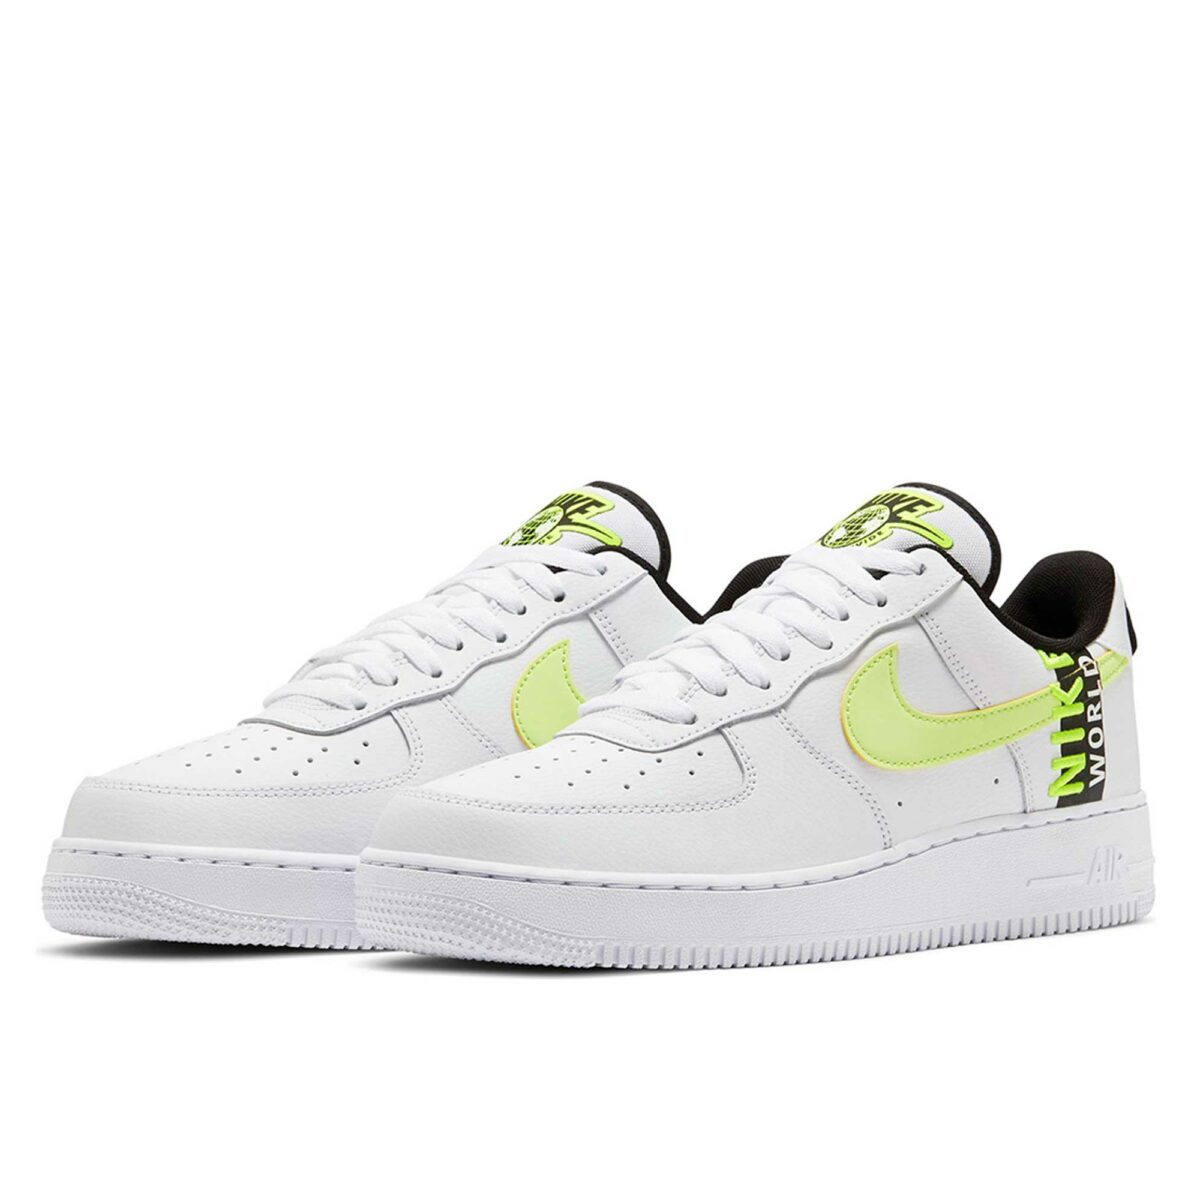 nike air force 1 07 lv8 worldwide white yellow ck6924_101 купить